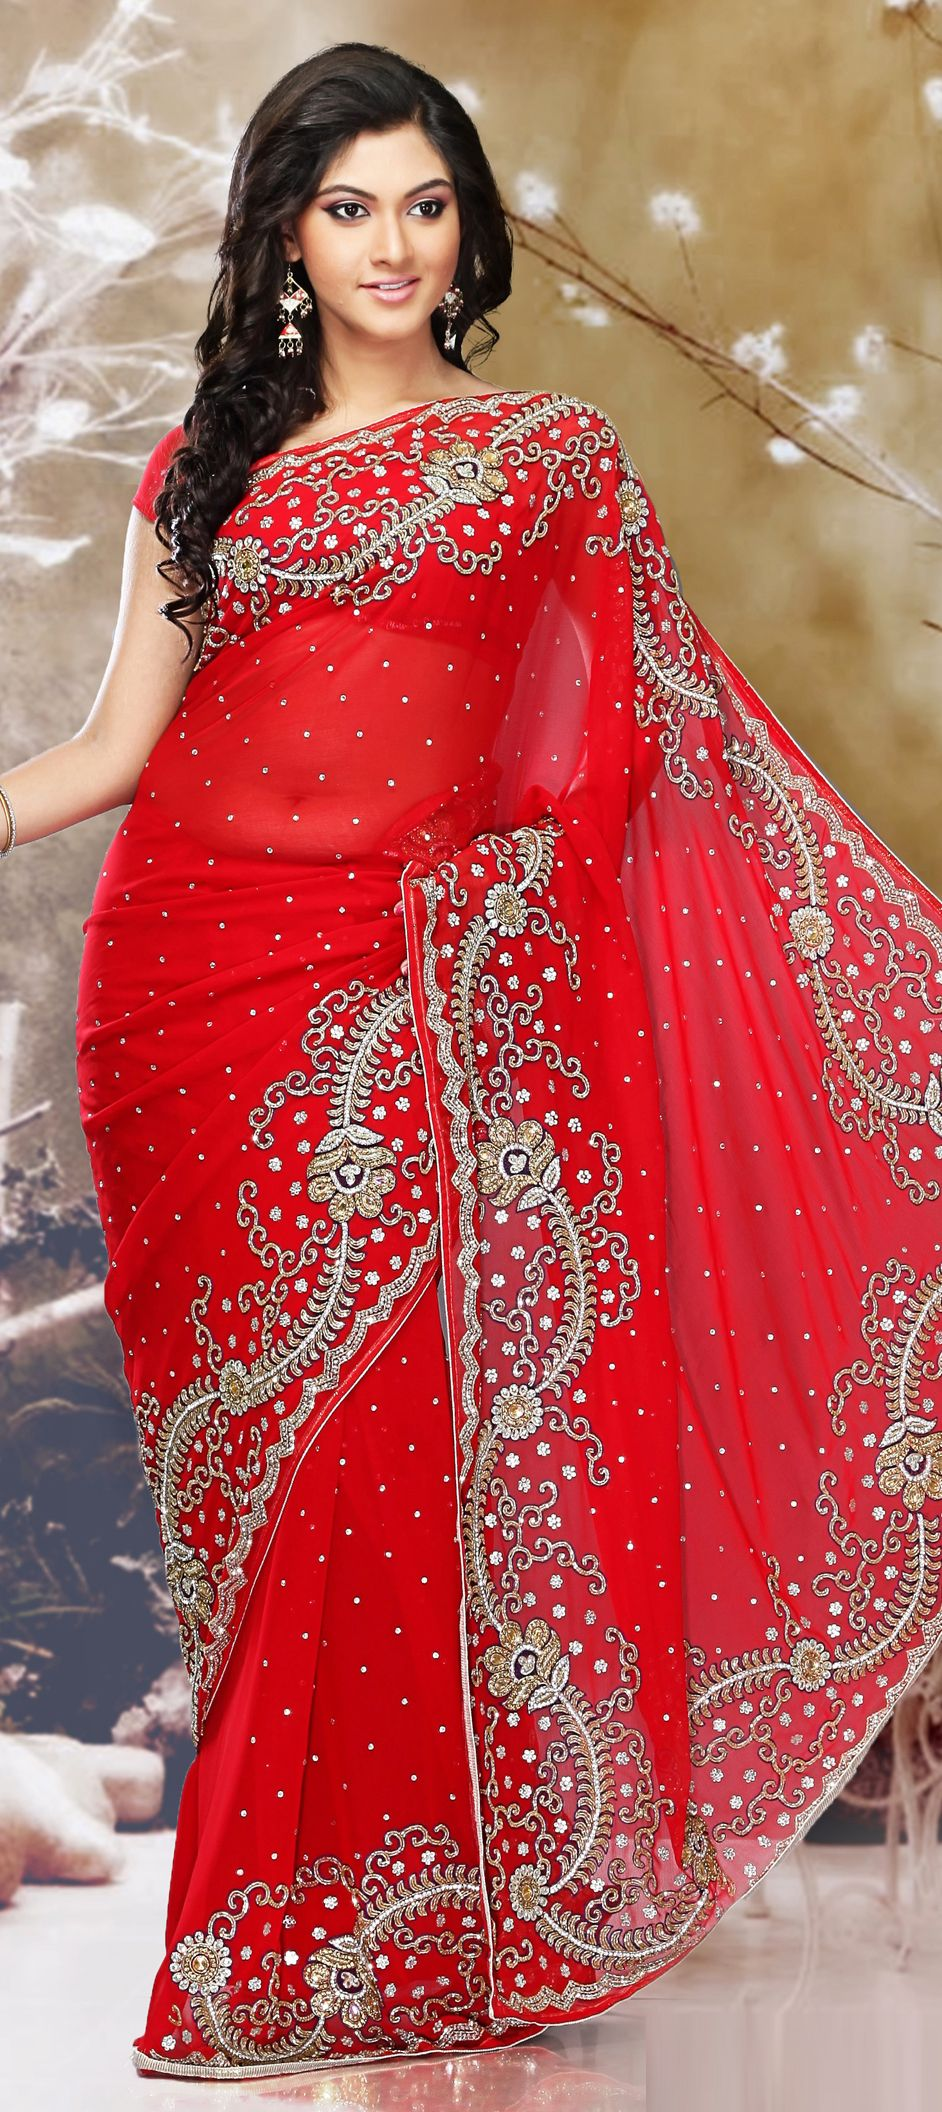 f1c8ac8979b 160272  Red and Maroon color family Bridal Wedding Sarees with matching  unstitched blouse.